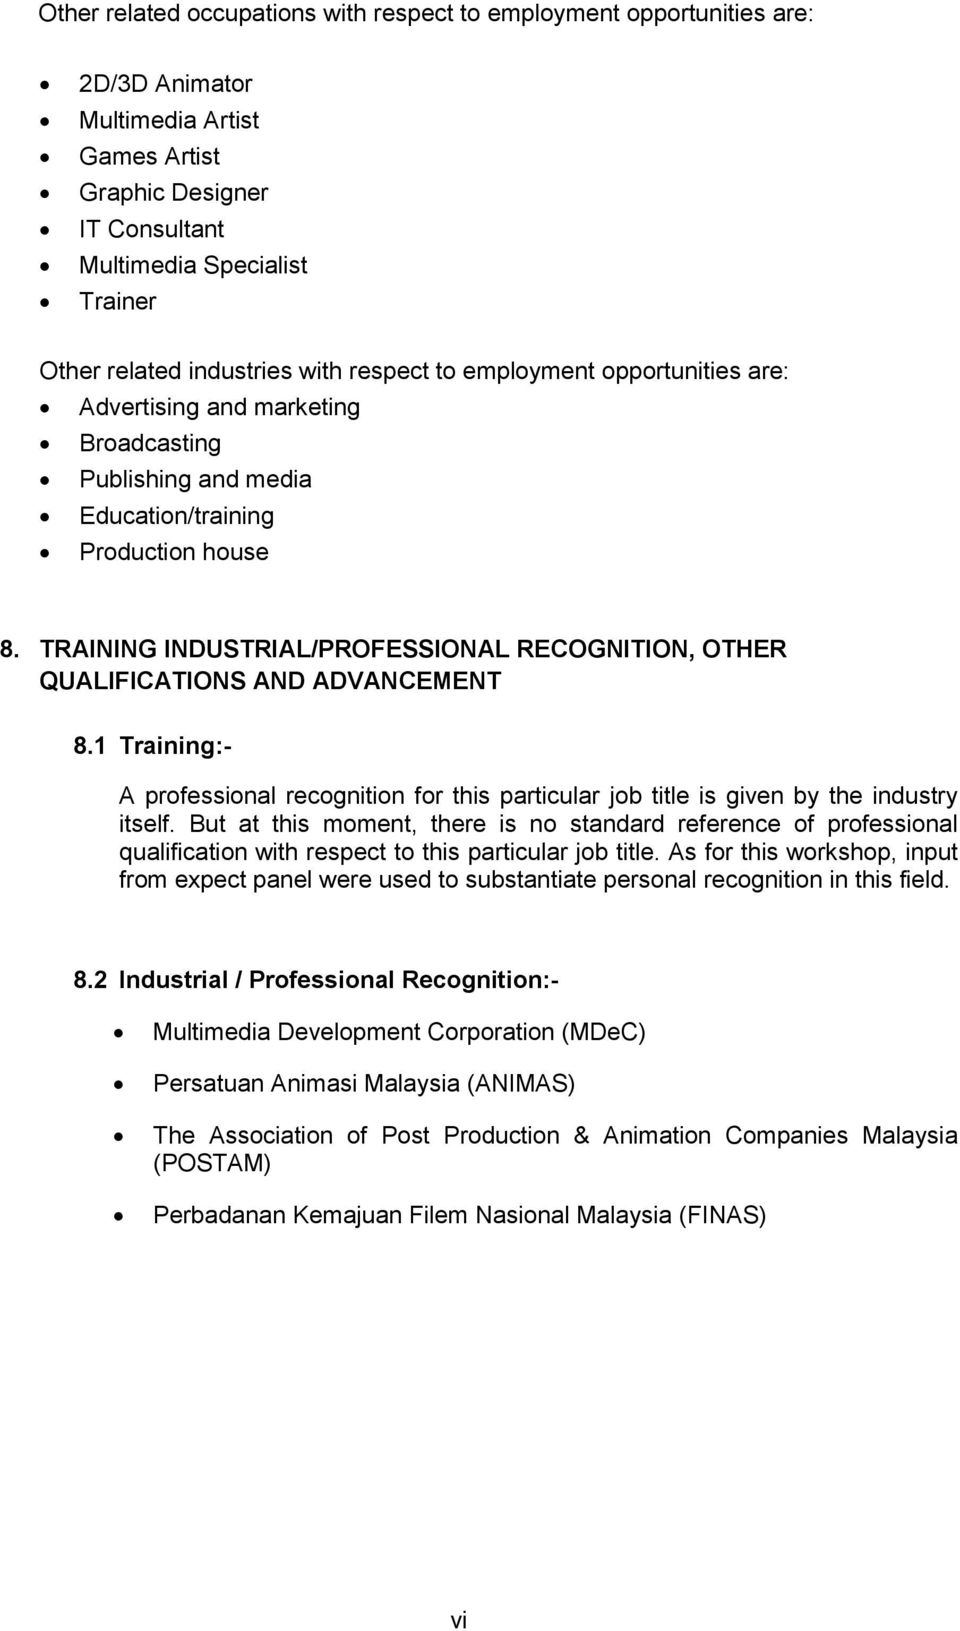 TRAINING INDUSTRIAL/PROFESSIONAL RECOGNITION, OTHER QUALIFICATIONS AND ADVANCEMENT 8.1 Training:- A professional recognition for this particular job title is given by the industry itself.